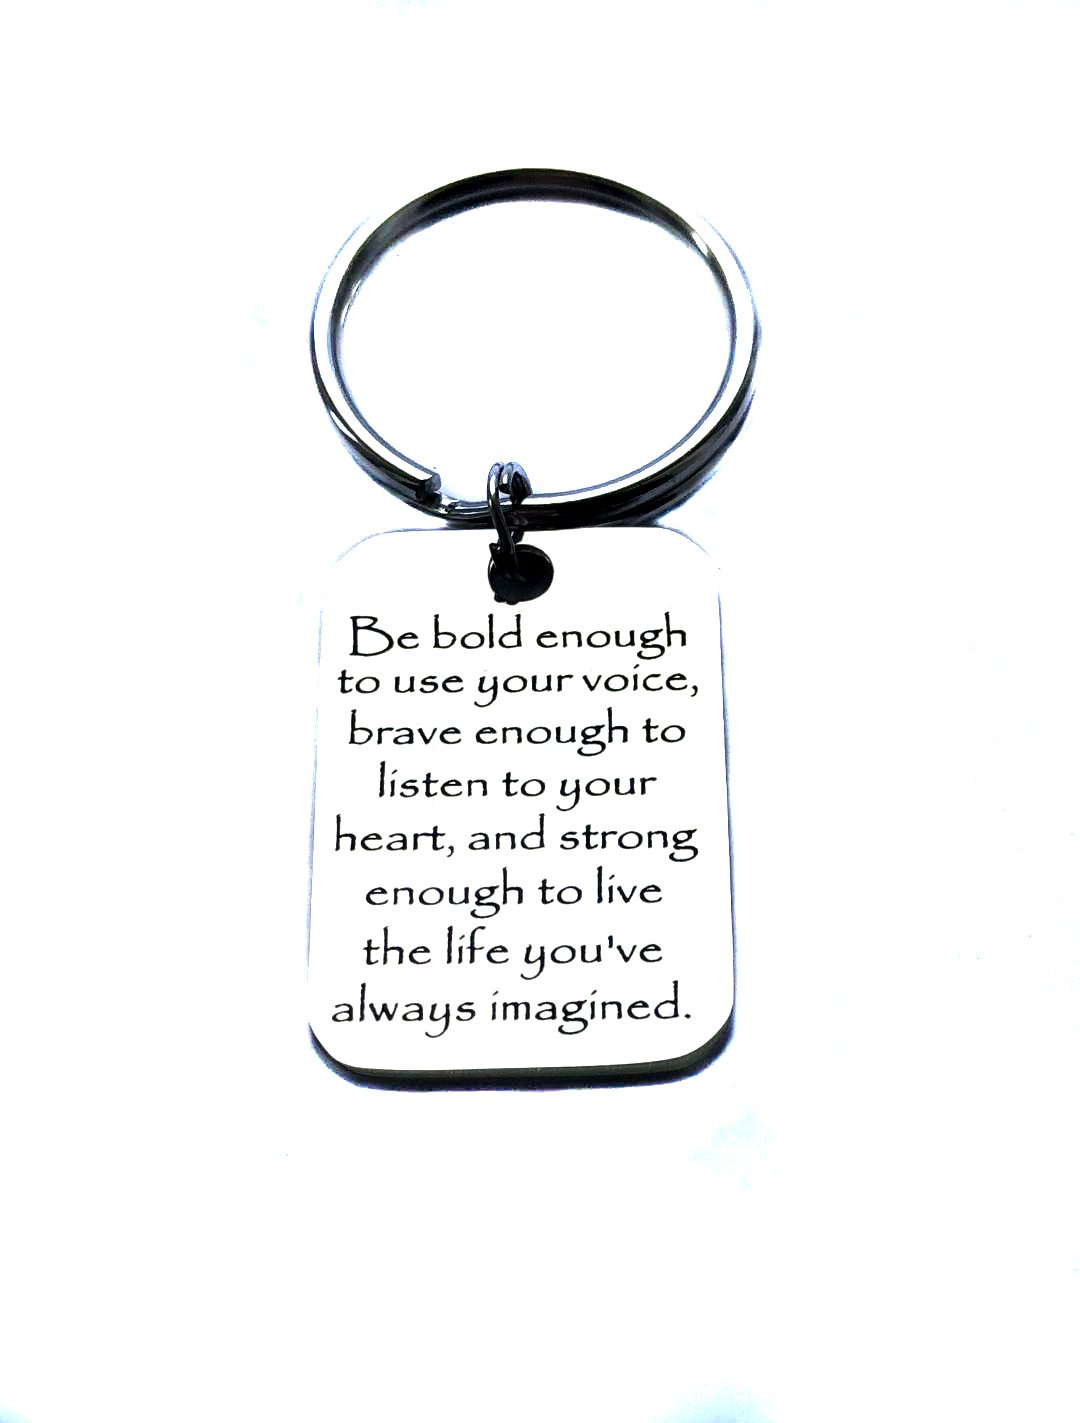 Stainless Steel Be Bold Enough To Use Your Voice, Brave Enough To Listen To Your Heart, And Strong Enough To Live The Life You've Always Imagine Charm, Keychain, Bag Charm, Zipper Pull